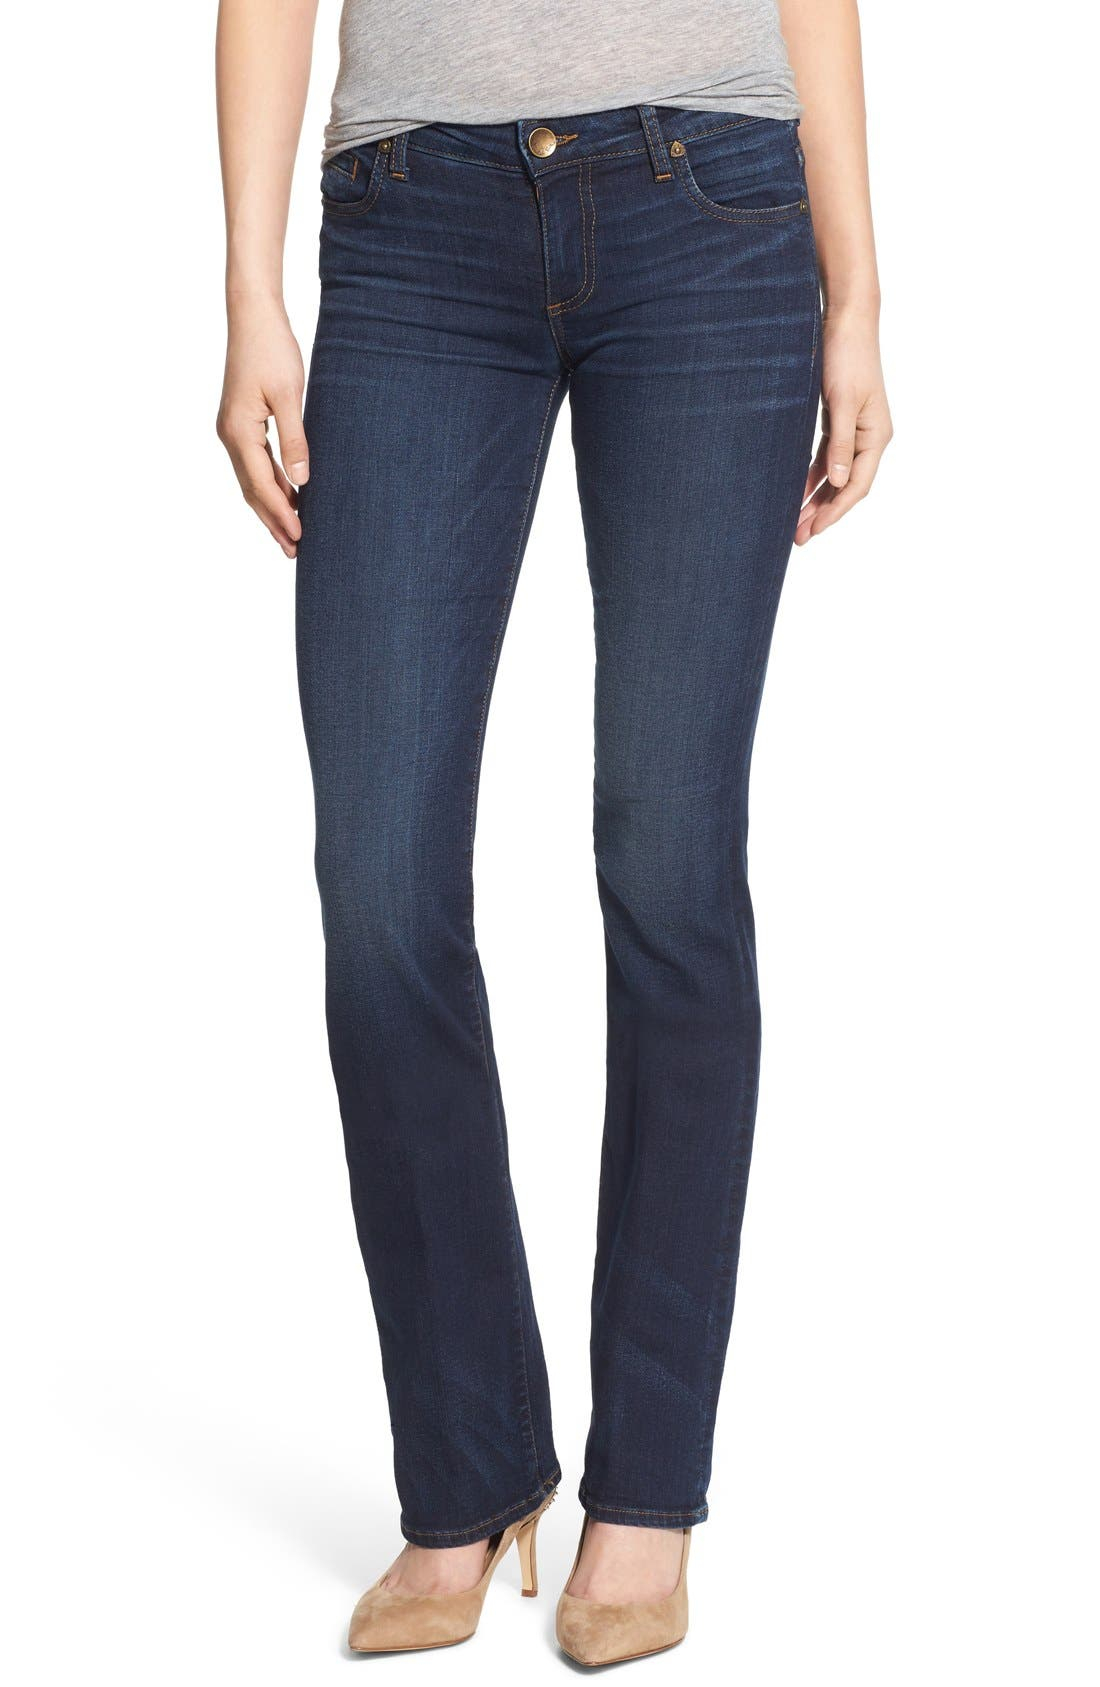 'Natalie' Stretch Bootleg Jeans,                             Main thumbnail 1, color,